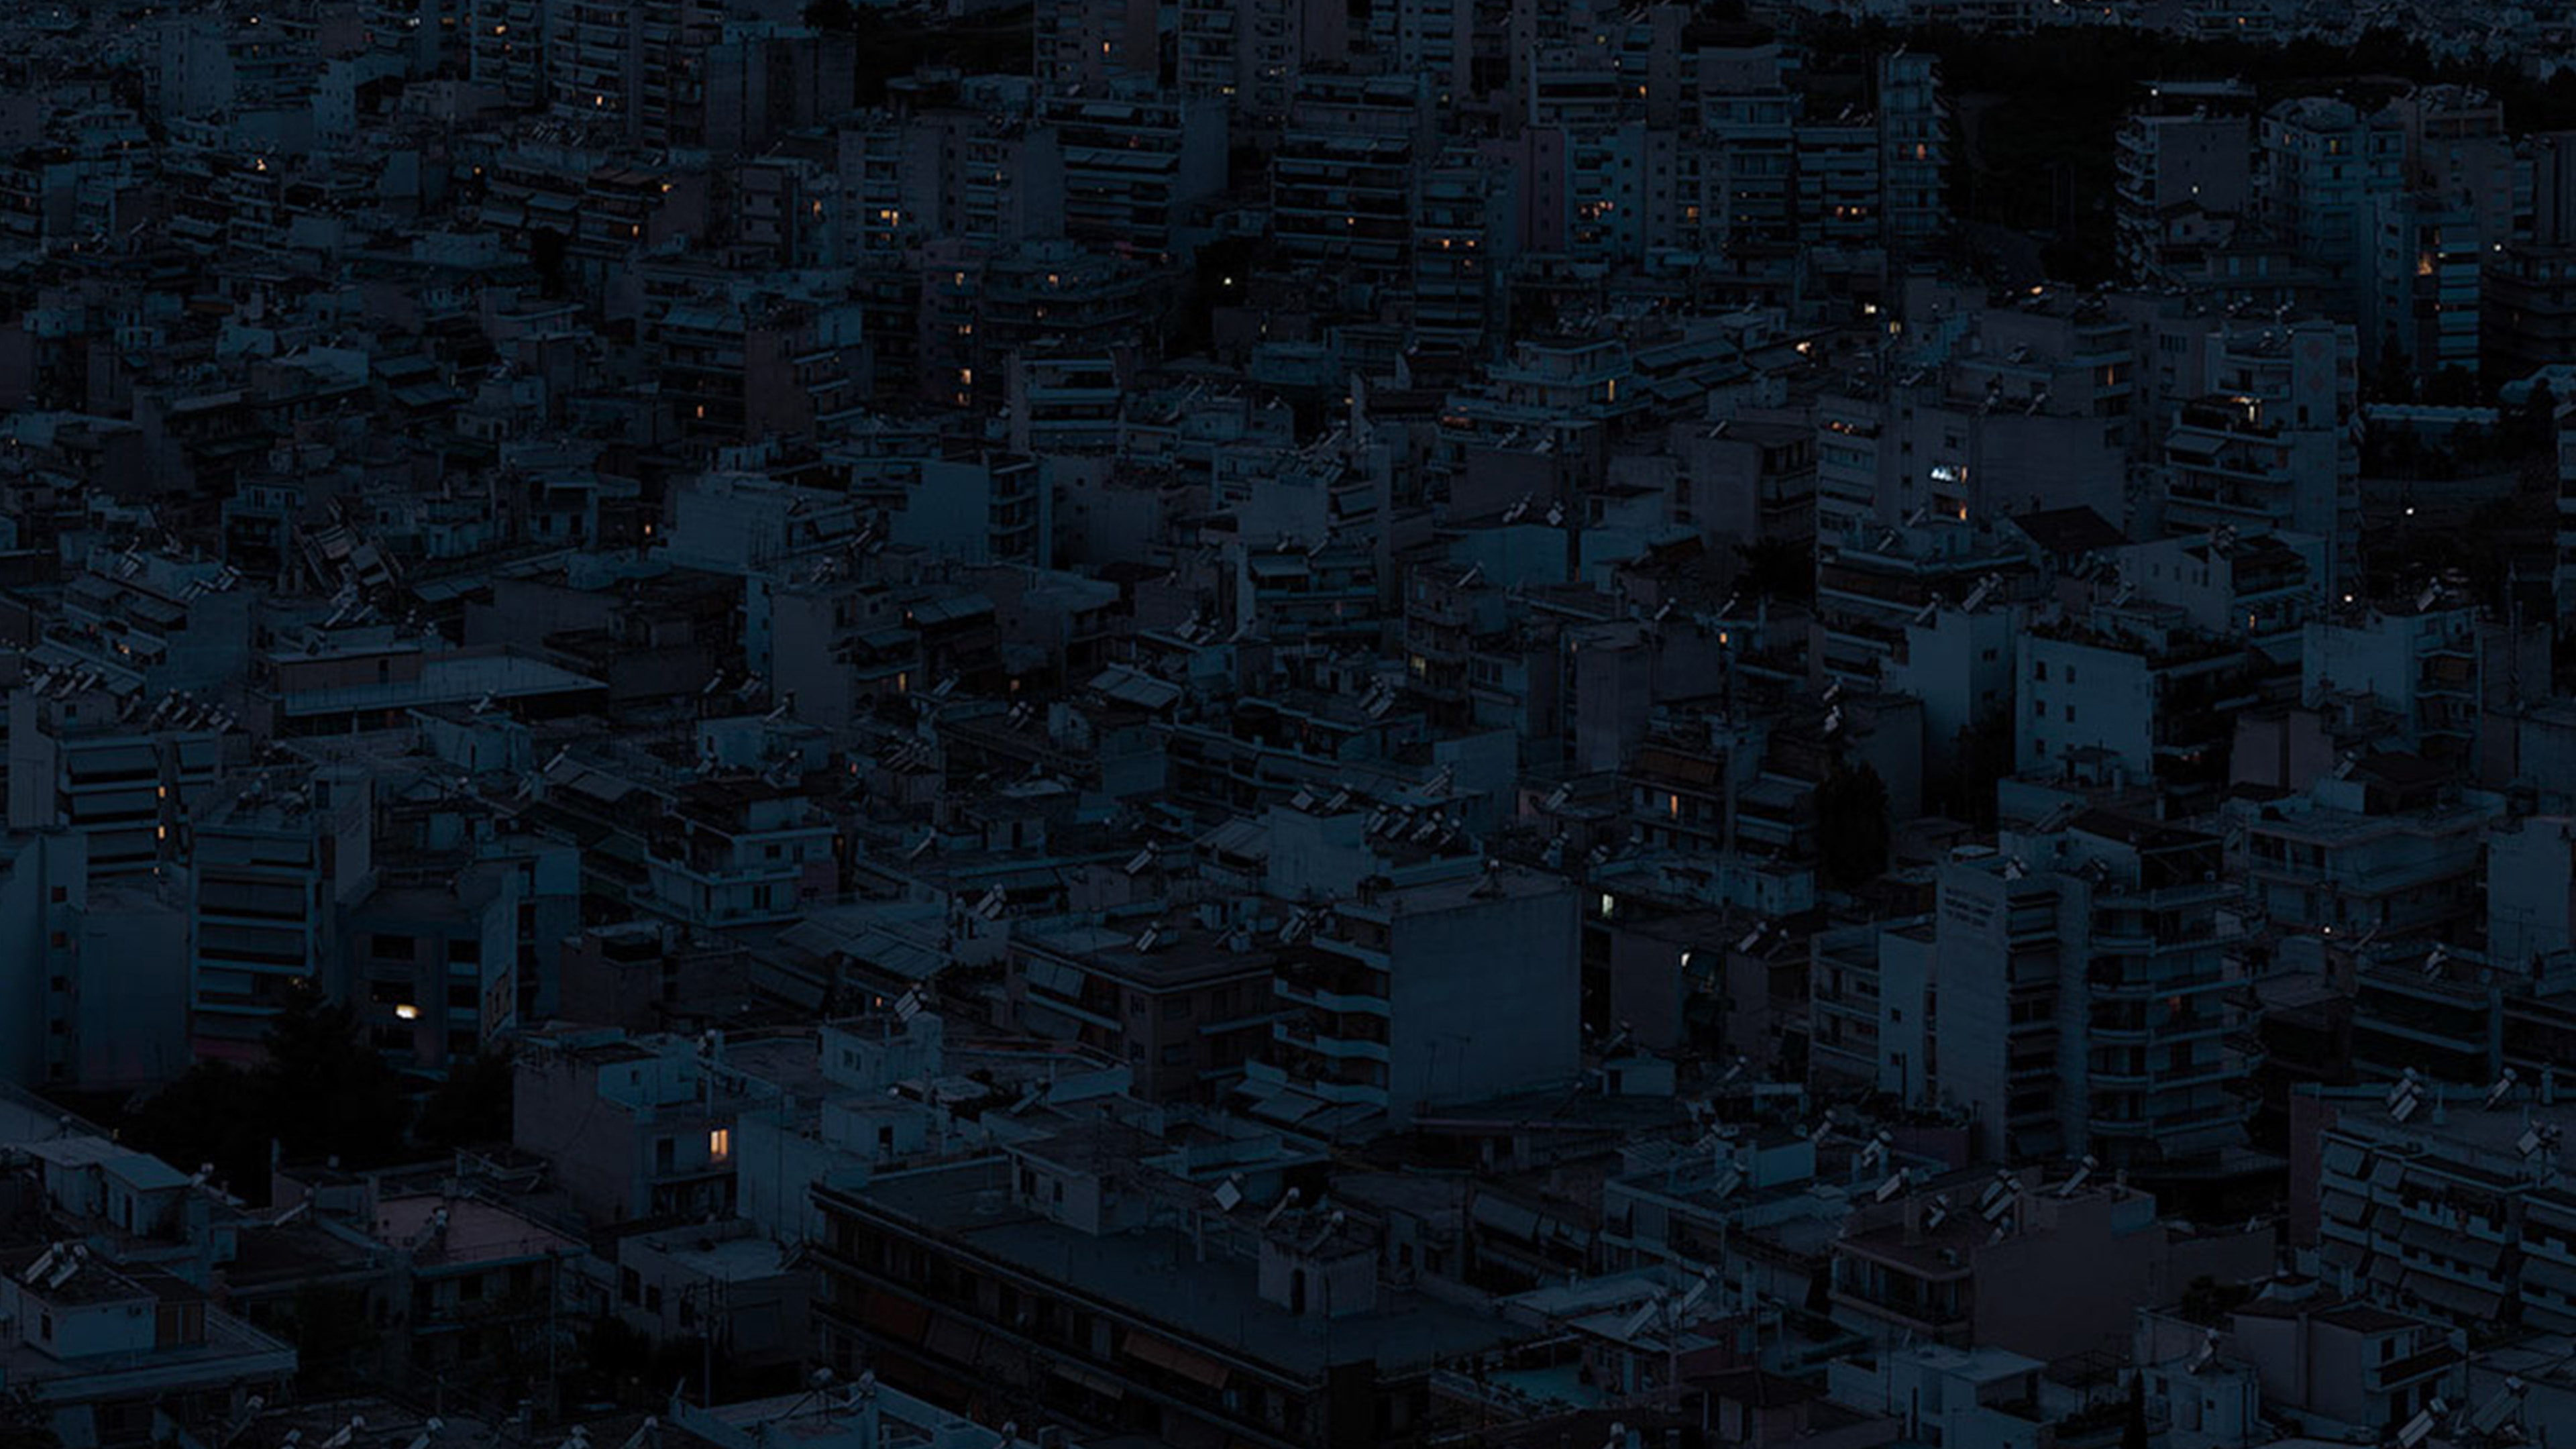 be37-dark-city-night-art-illustration-wallpaper